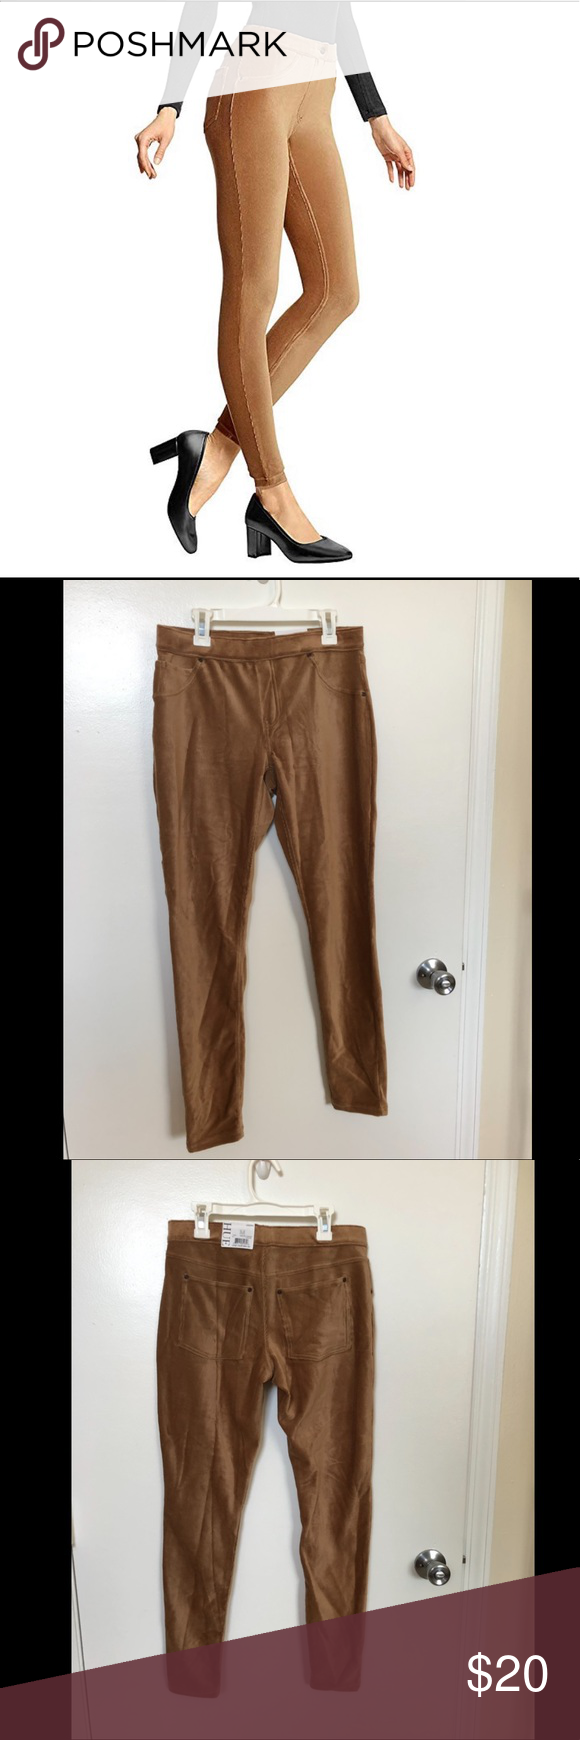 39df773c70e5d HUE corduroy leggings in caramel These HUE brand corduroy leggings are new  with tags! I